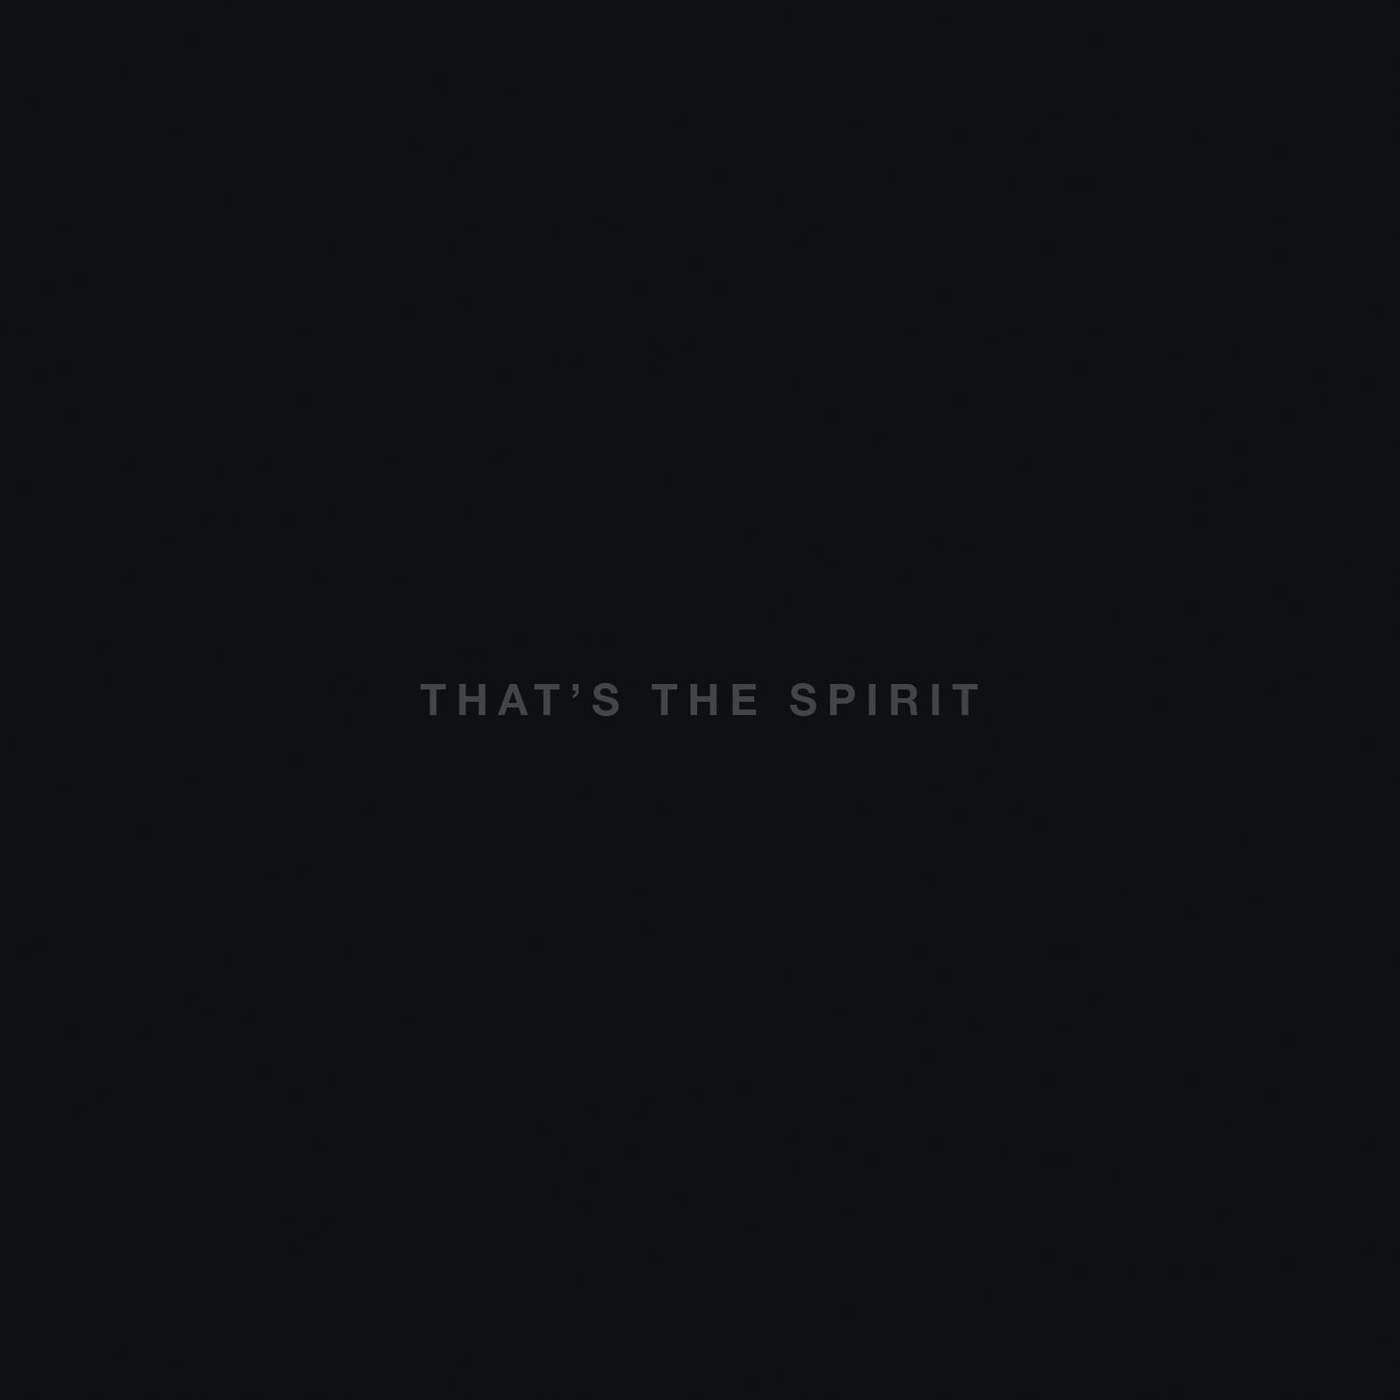 That's The Spirit Album Cover